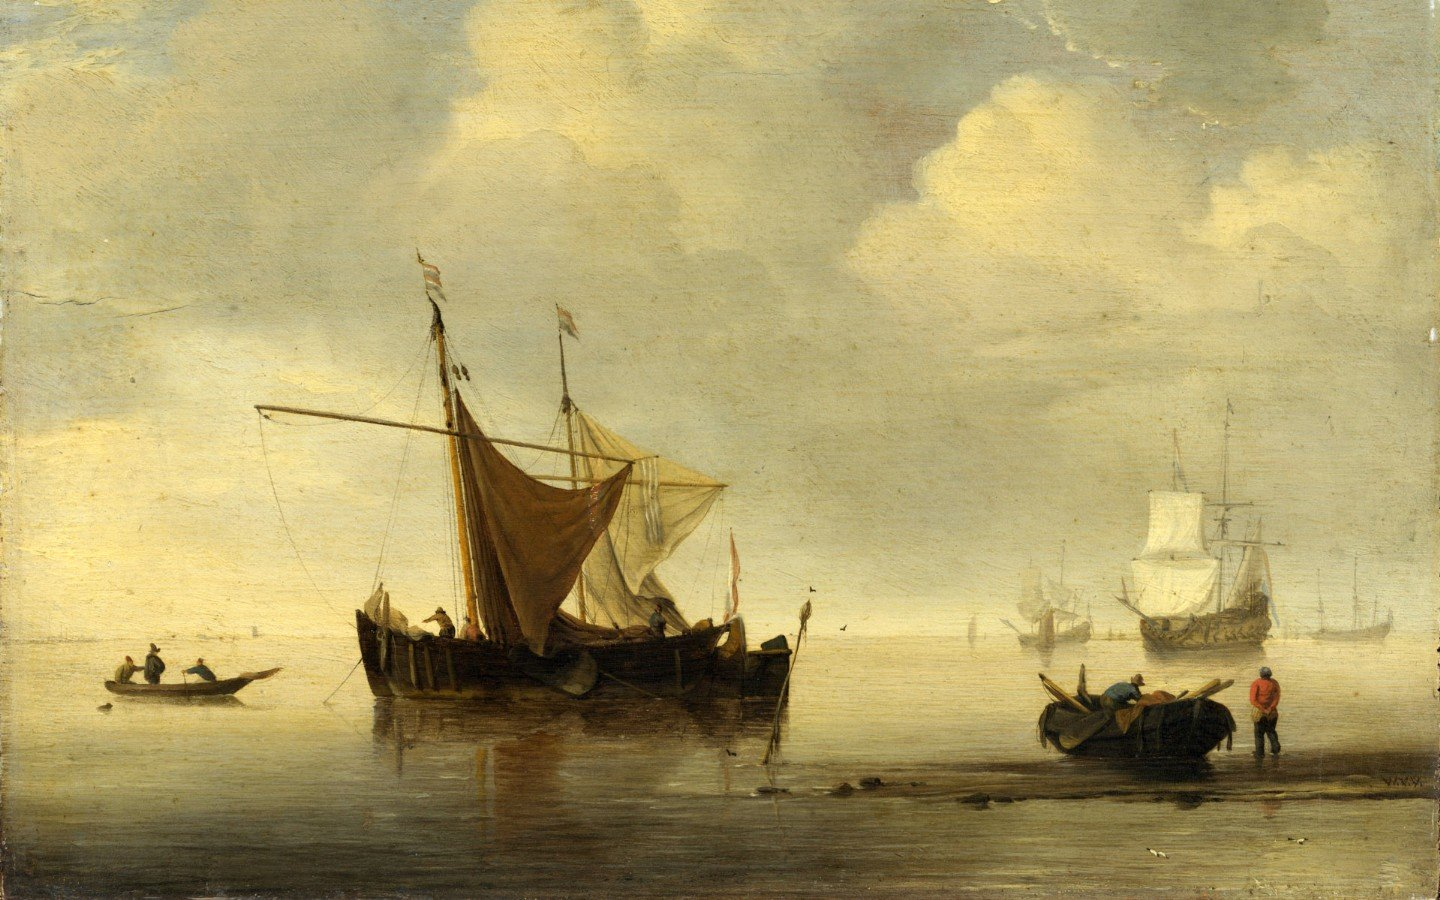 Famous Paintings Episode Widescreen 5 Wallpapers   Art Wallpapers 1440x900